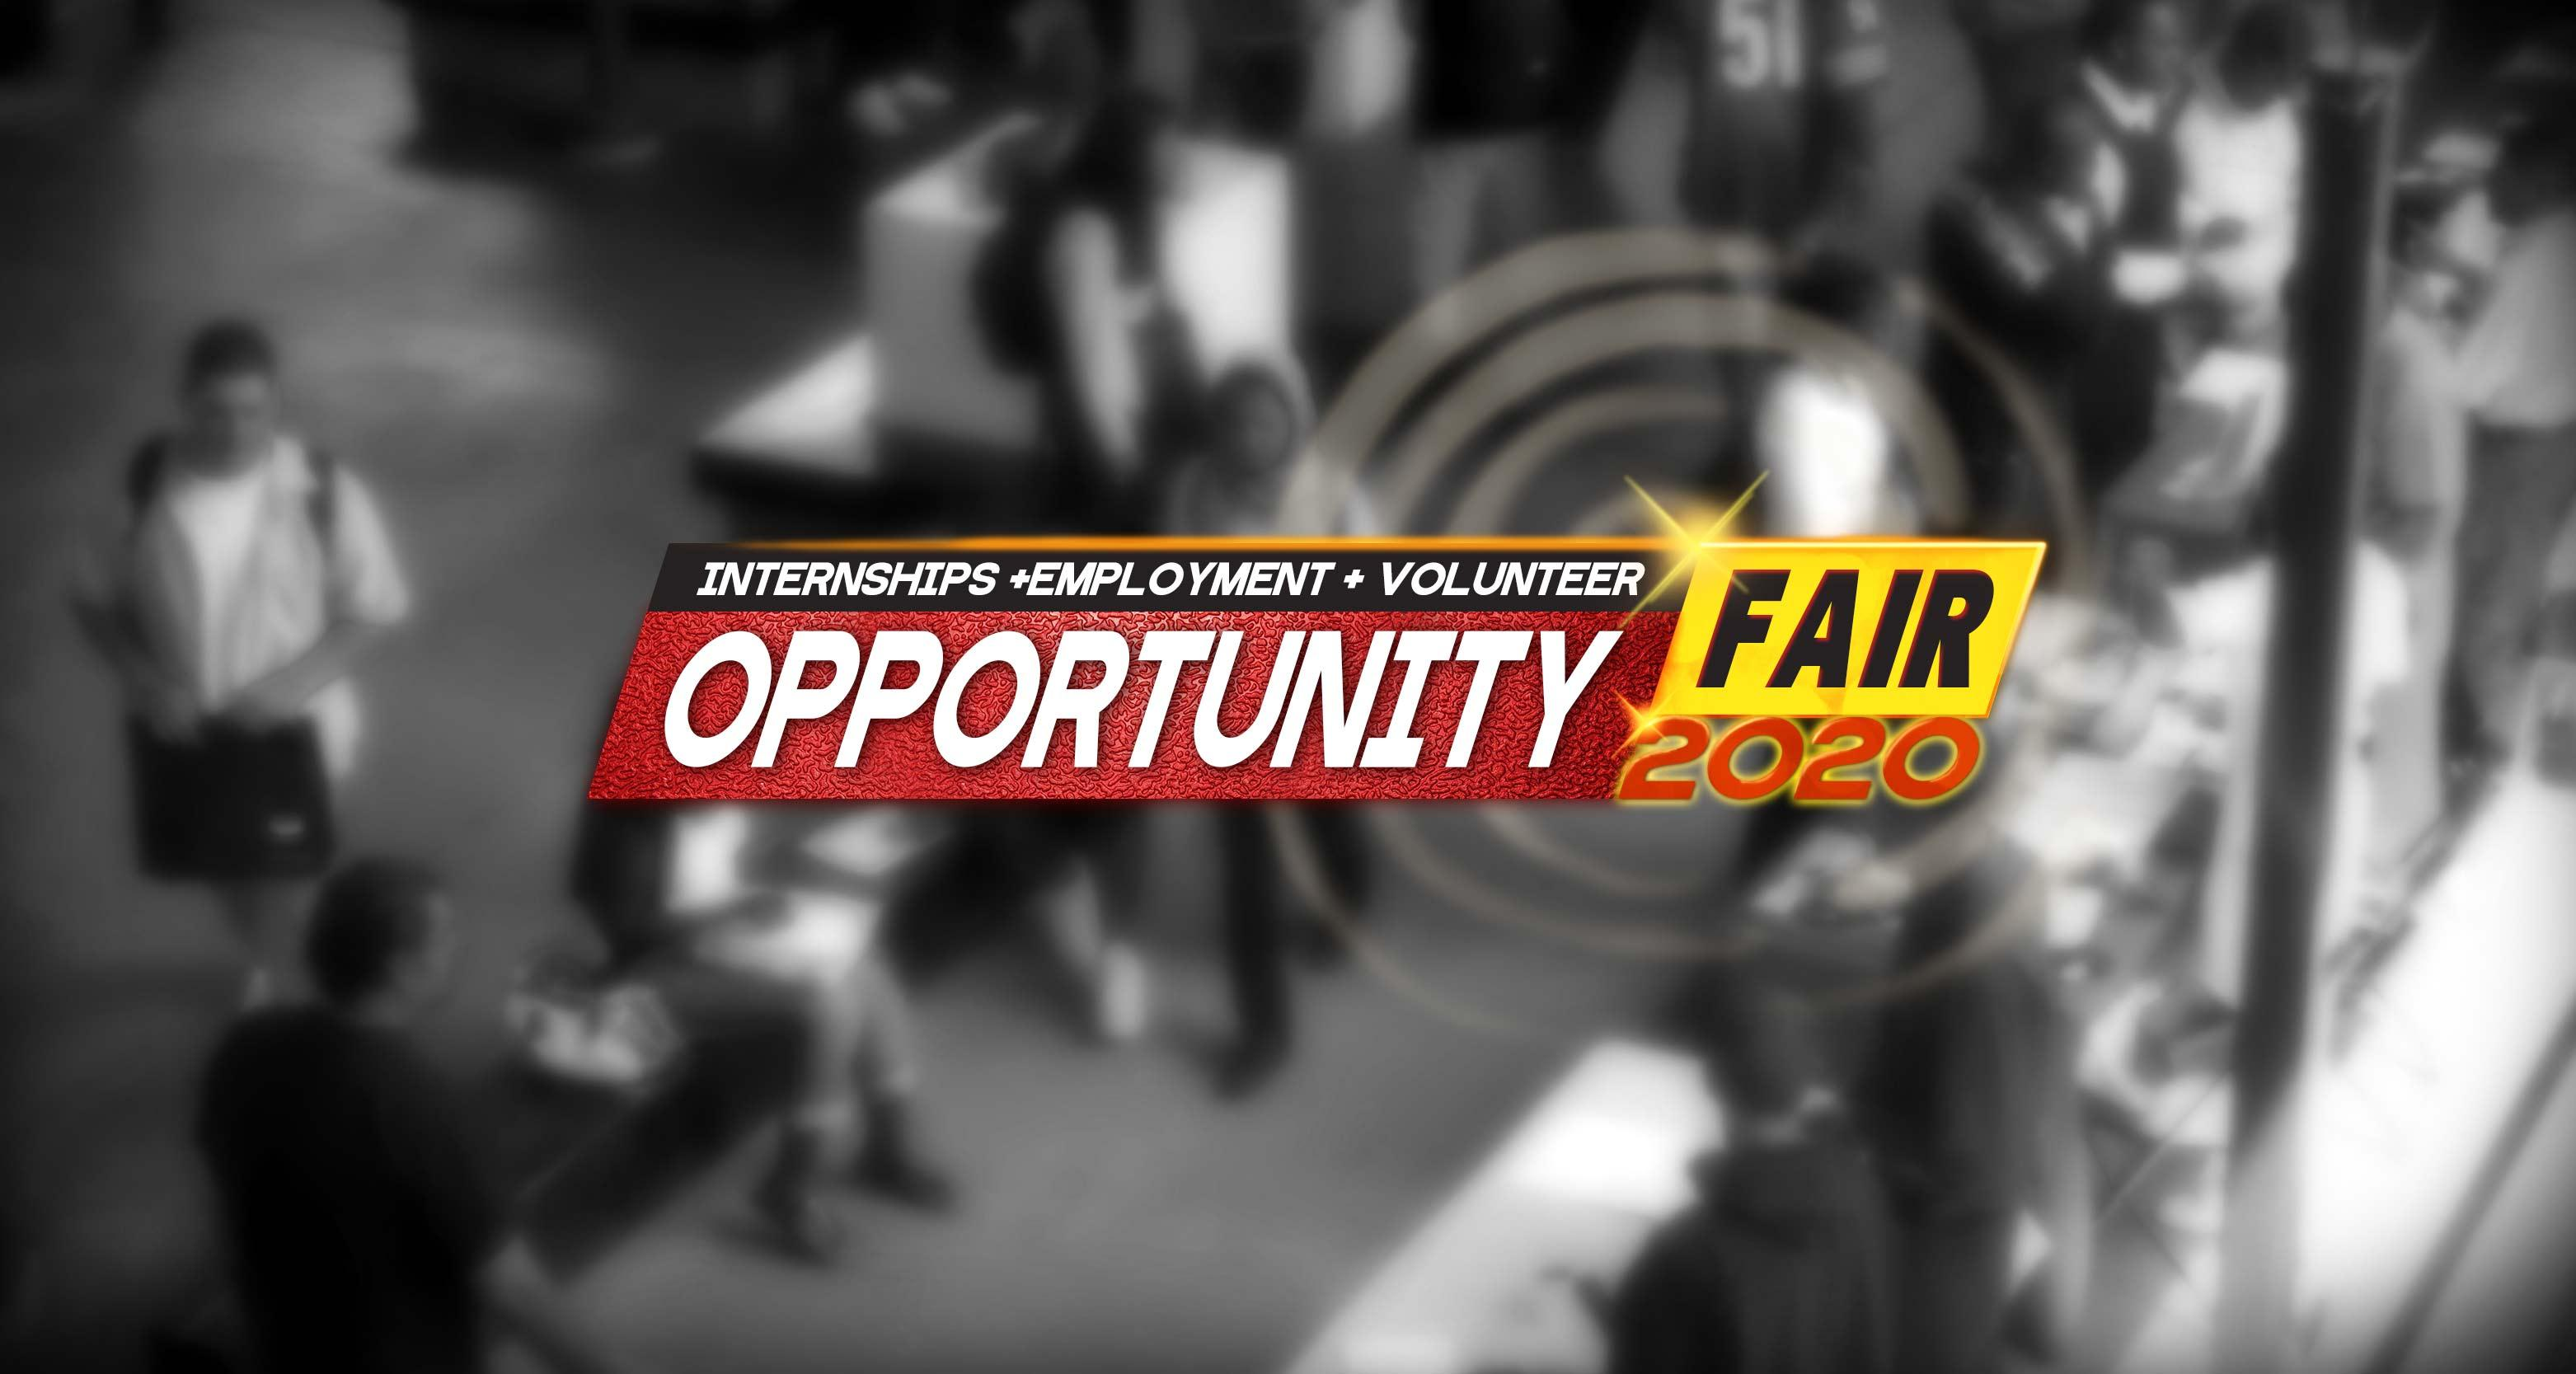 Get ready for the opportunity fair